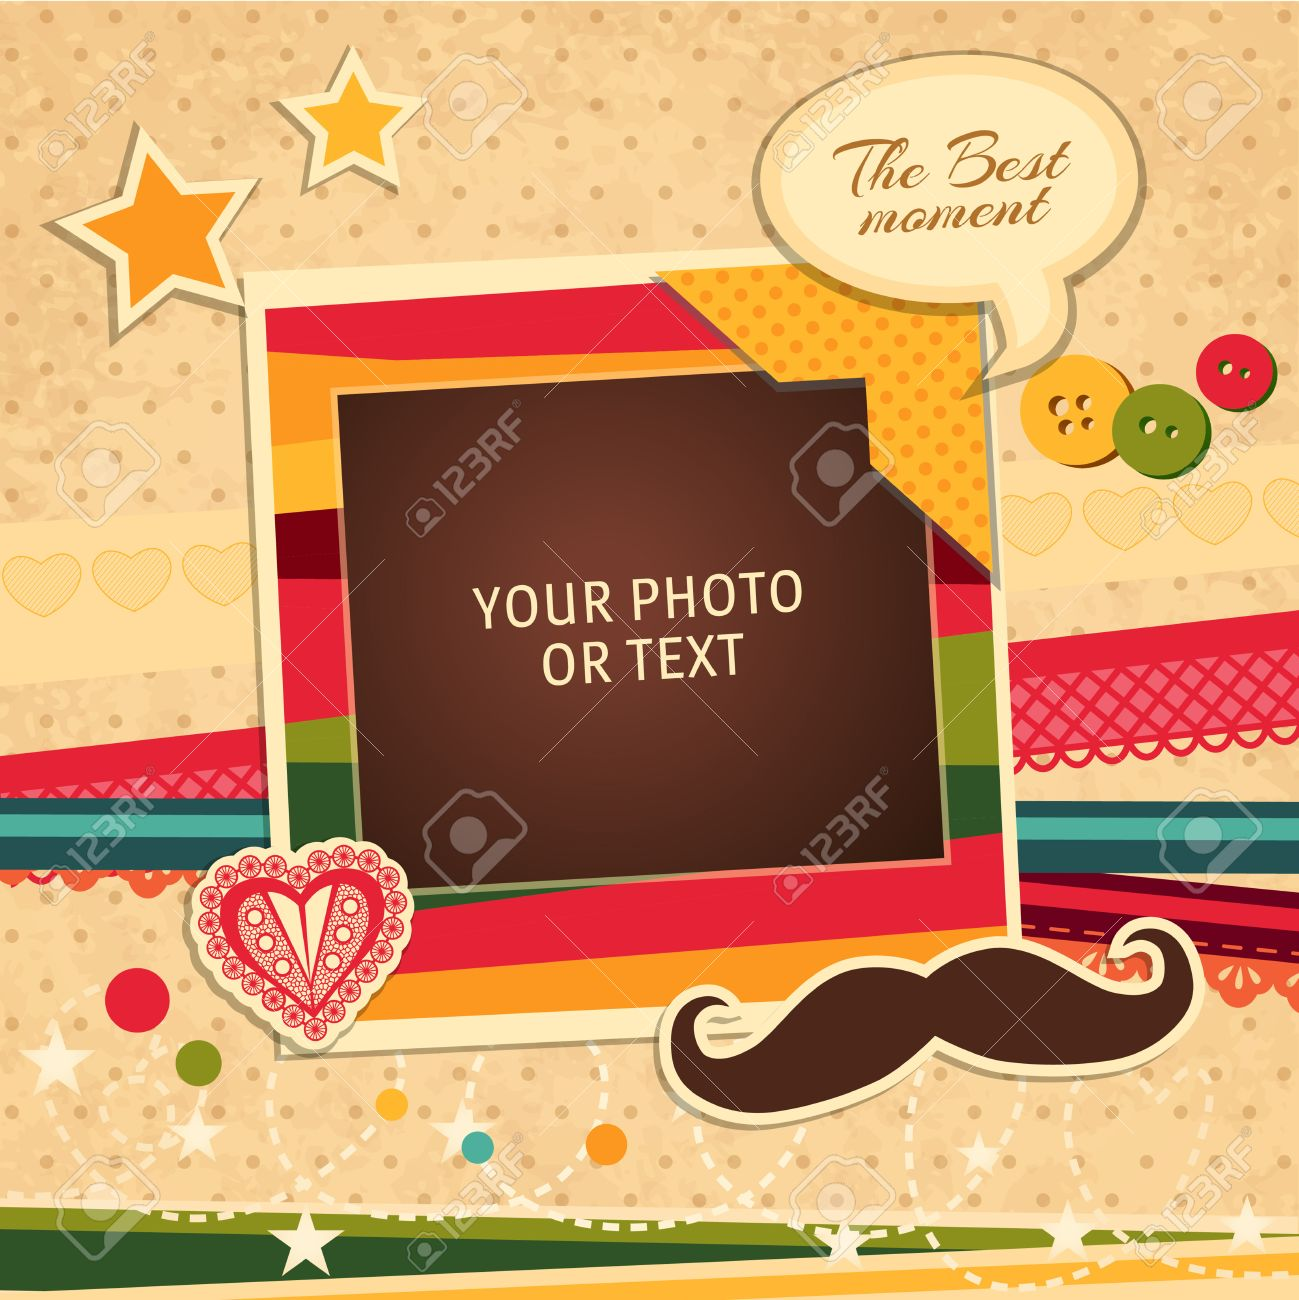 Design photo frames on nice background. Decorative template for baby, family or memories. Scrapbook concept, vector illustration. Birthday - 49174100